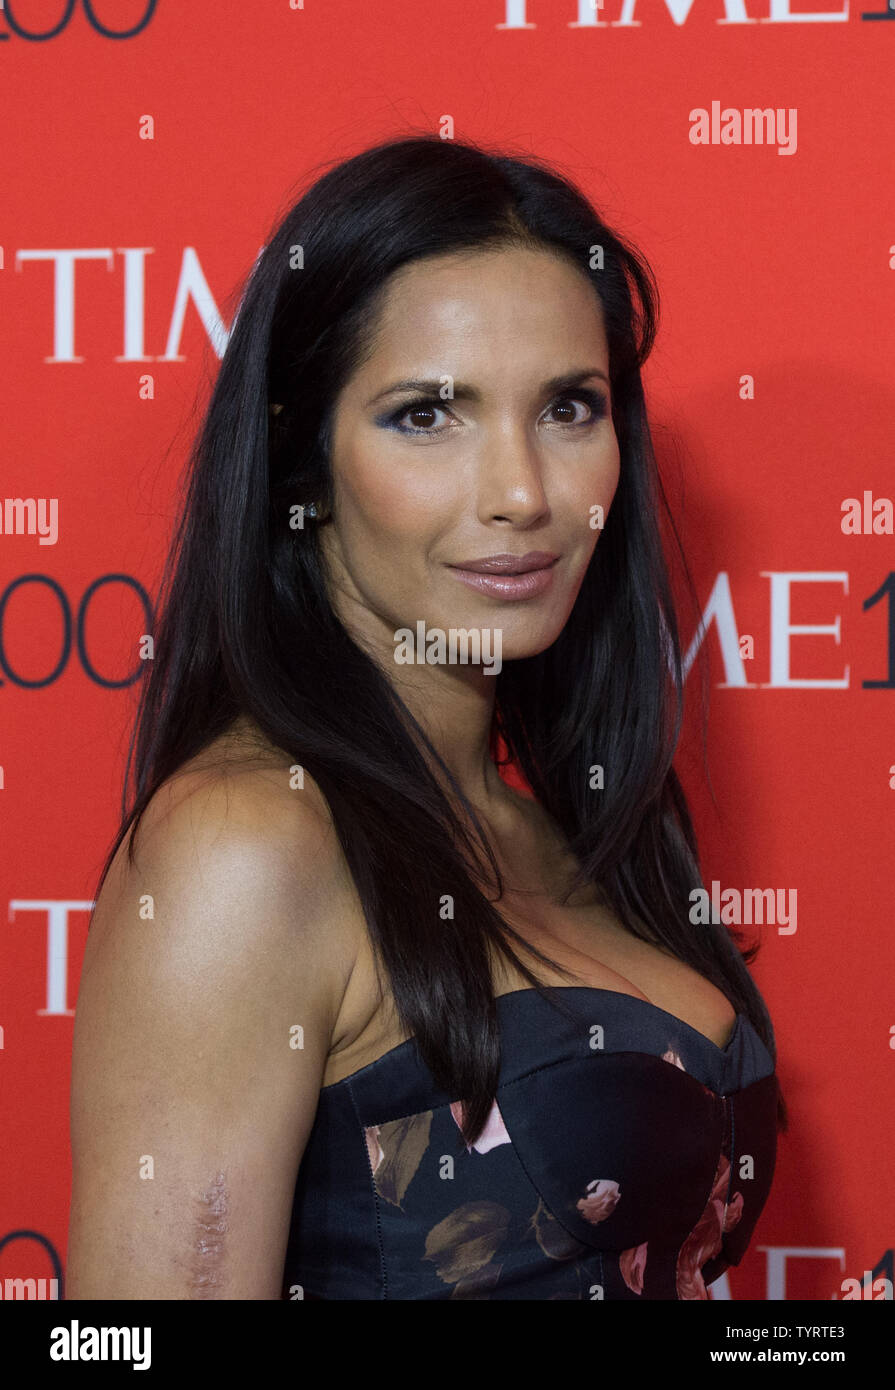 Padma Lakshmi arrives on the red carpet at the TIME 100 Gala at